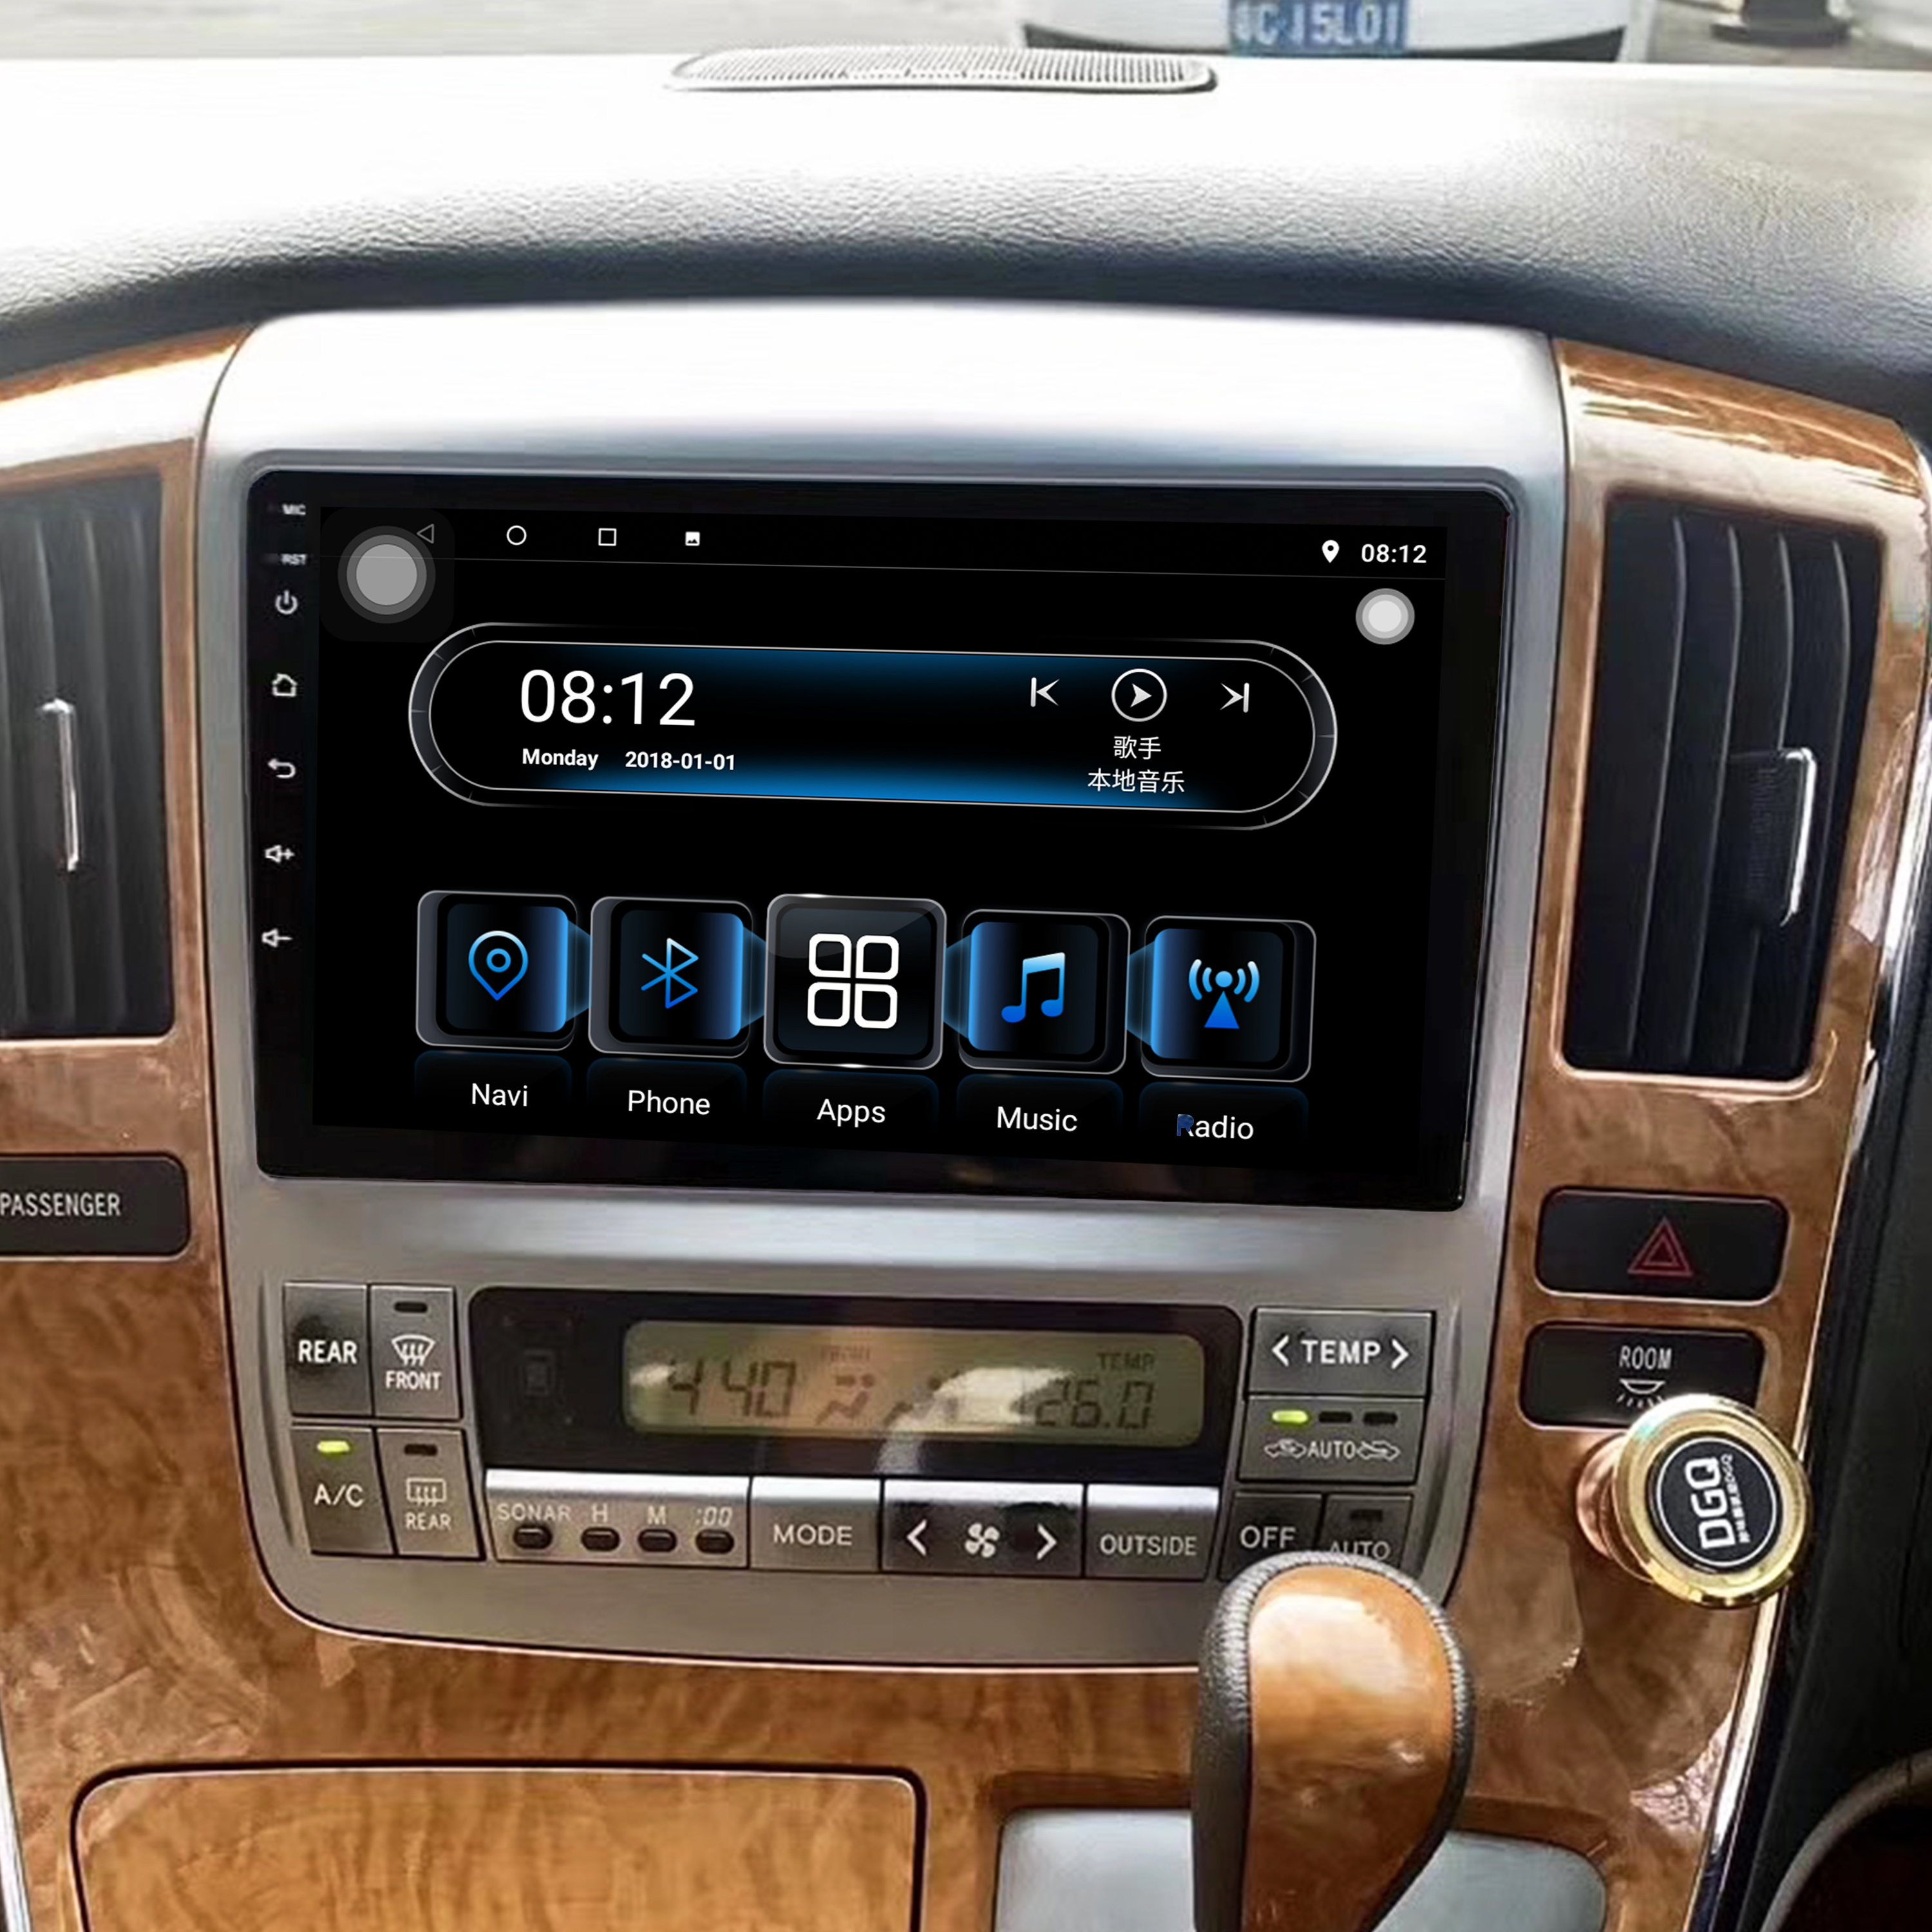 8Core Ram4g Rom64g Stereo Radio Android9.1 Car Multimedia Player For Toyota Alphard 2002-2007  With DSP Carplay 4G Navigation